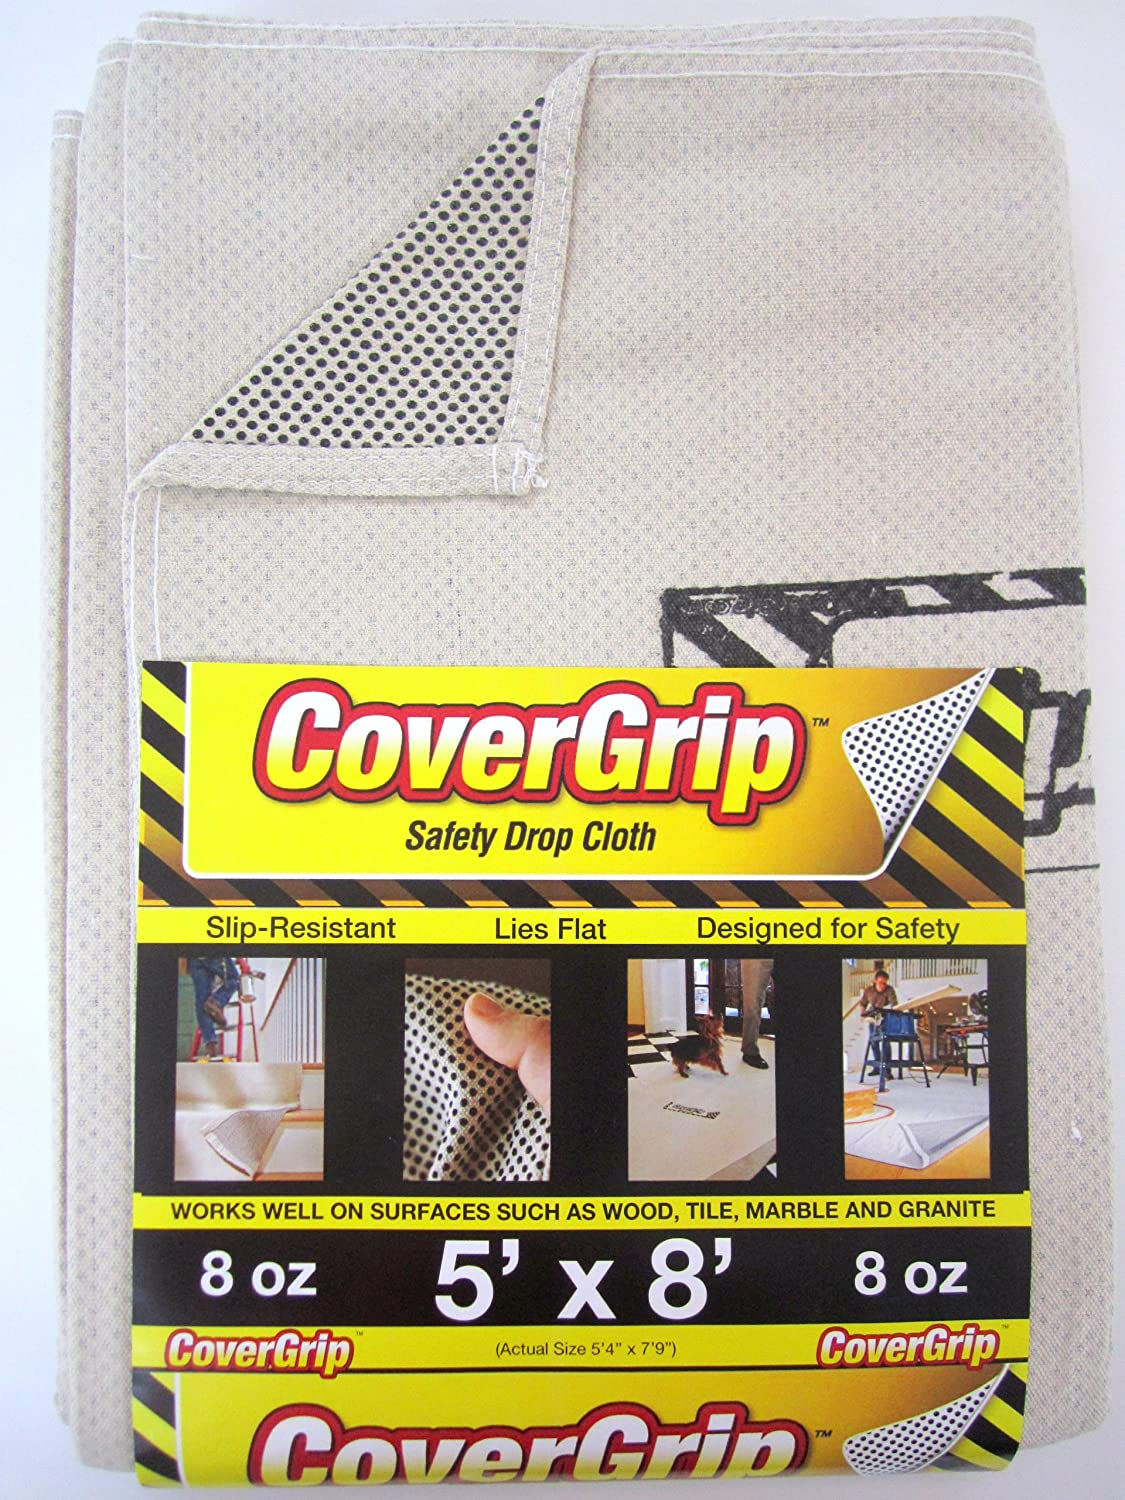 CoverGrip Canvas Safety Drop Cloth